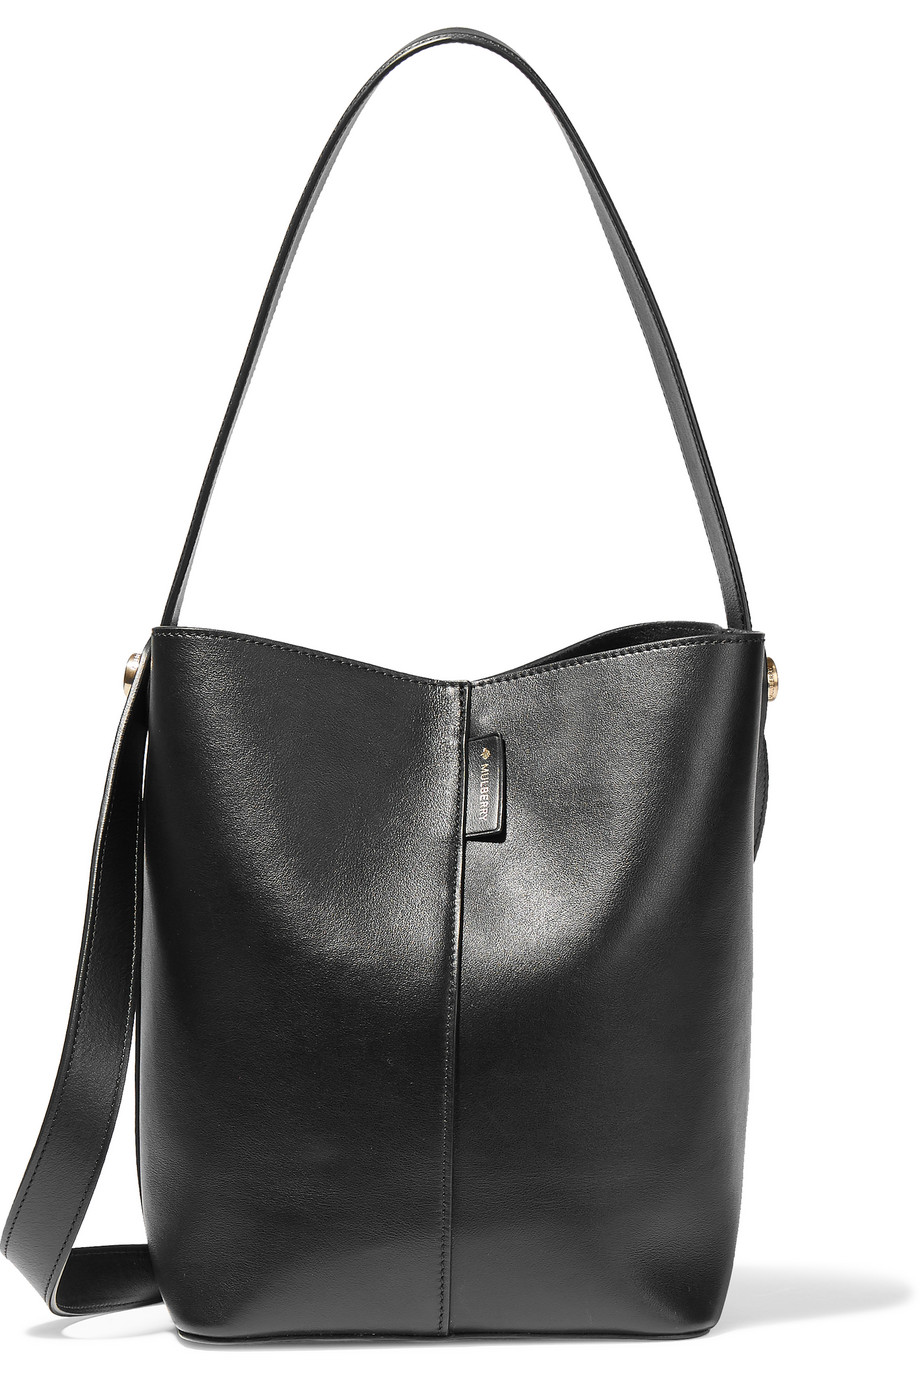 Mulberry Kite Small Leather Shoulder Bag, Black, Women's